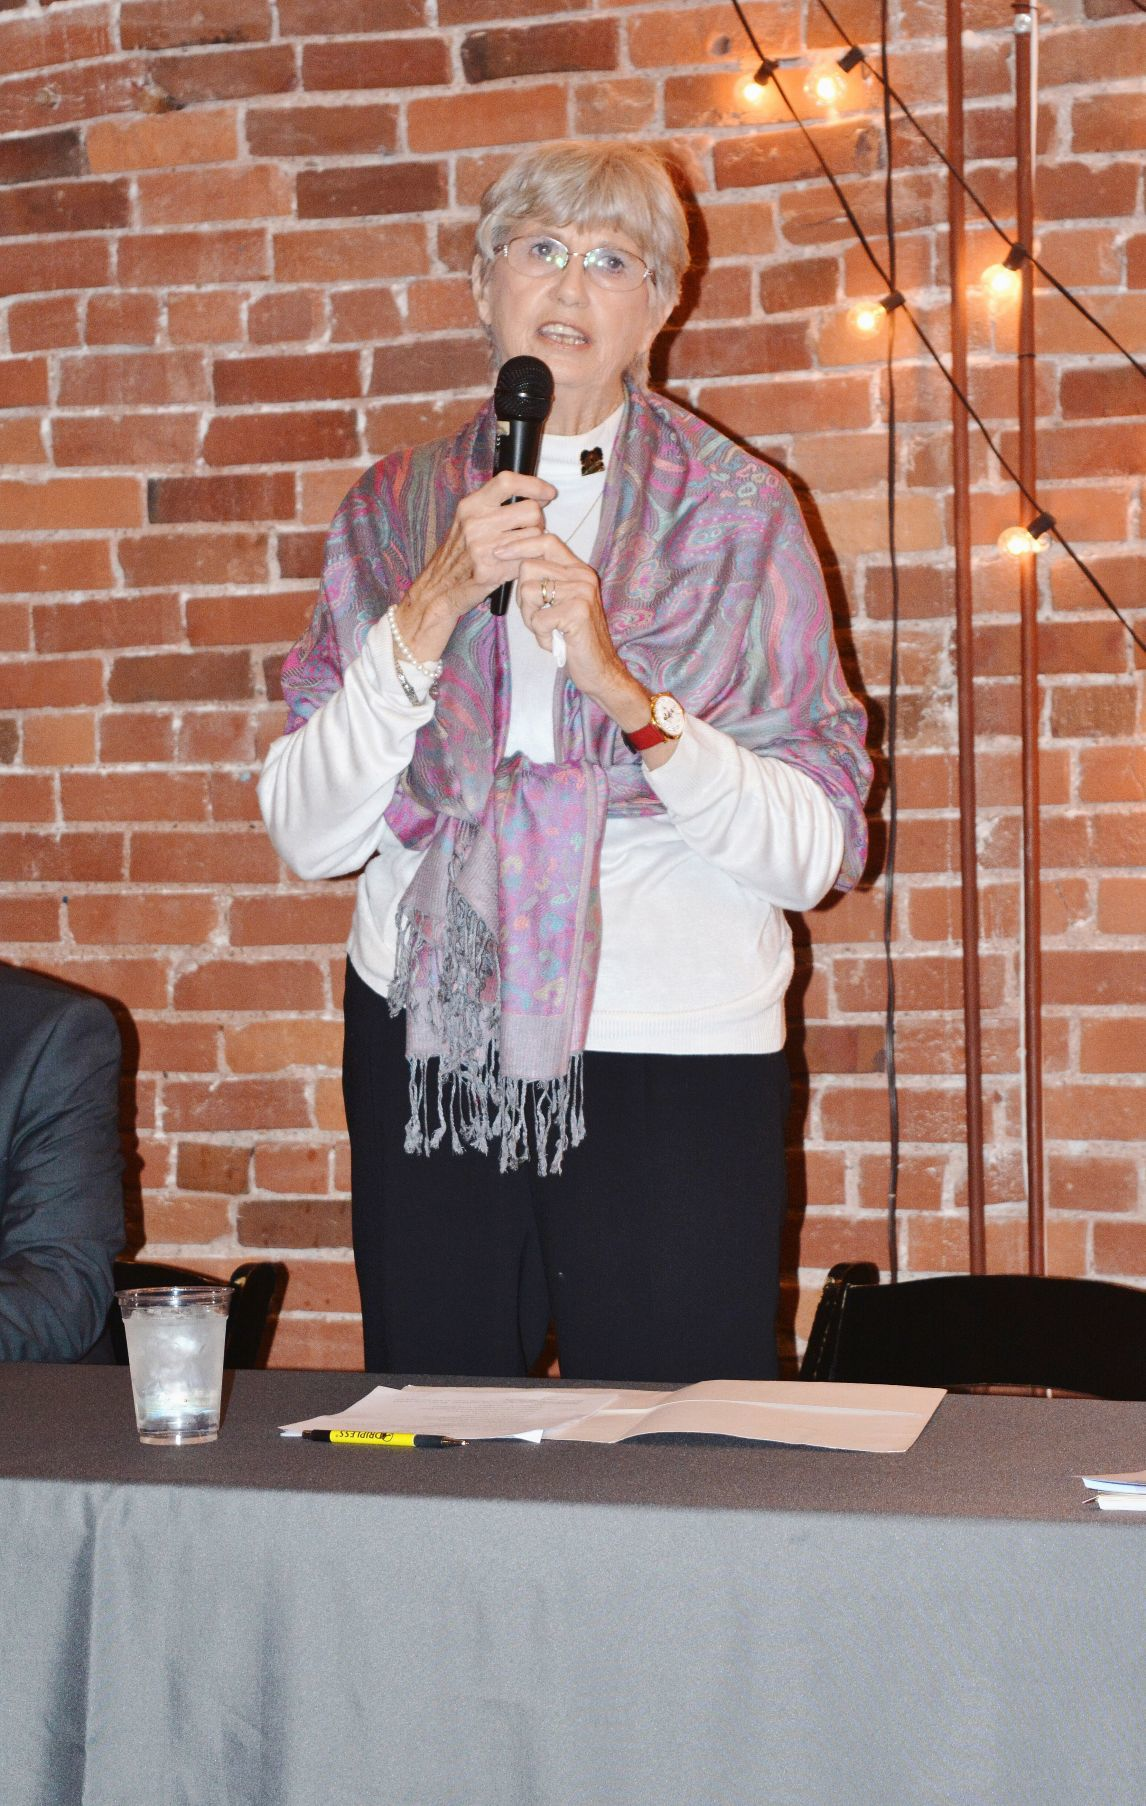 Elected officials speak during State of the City Breakfast